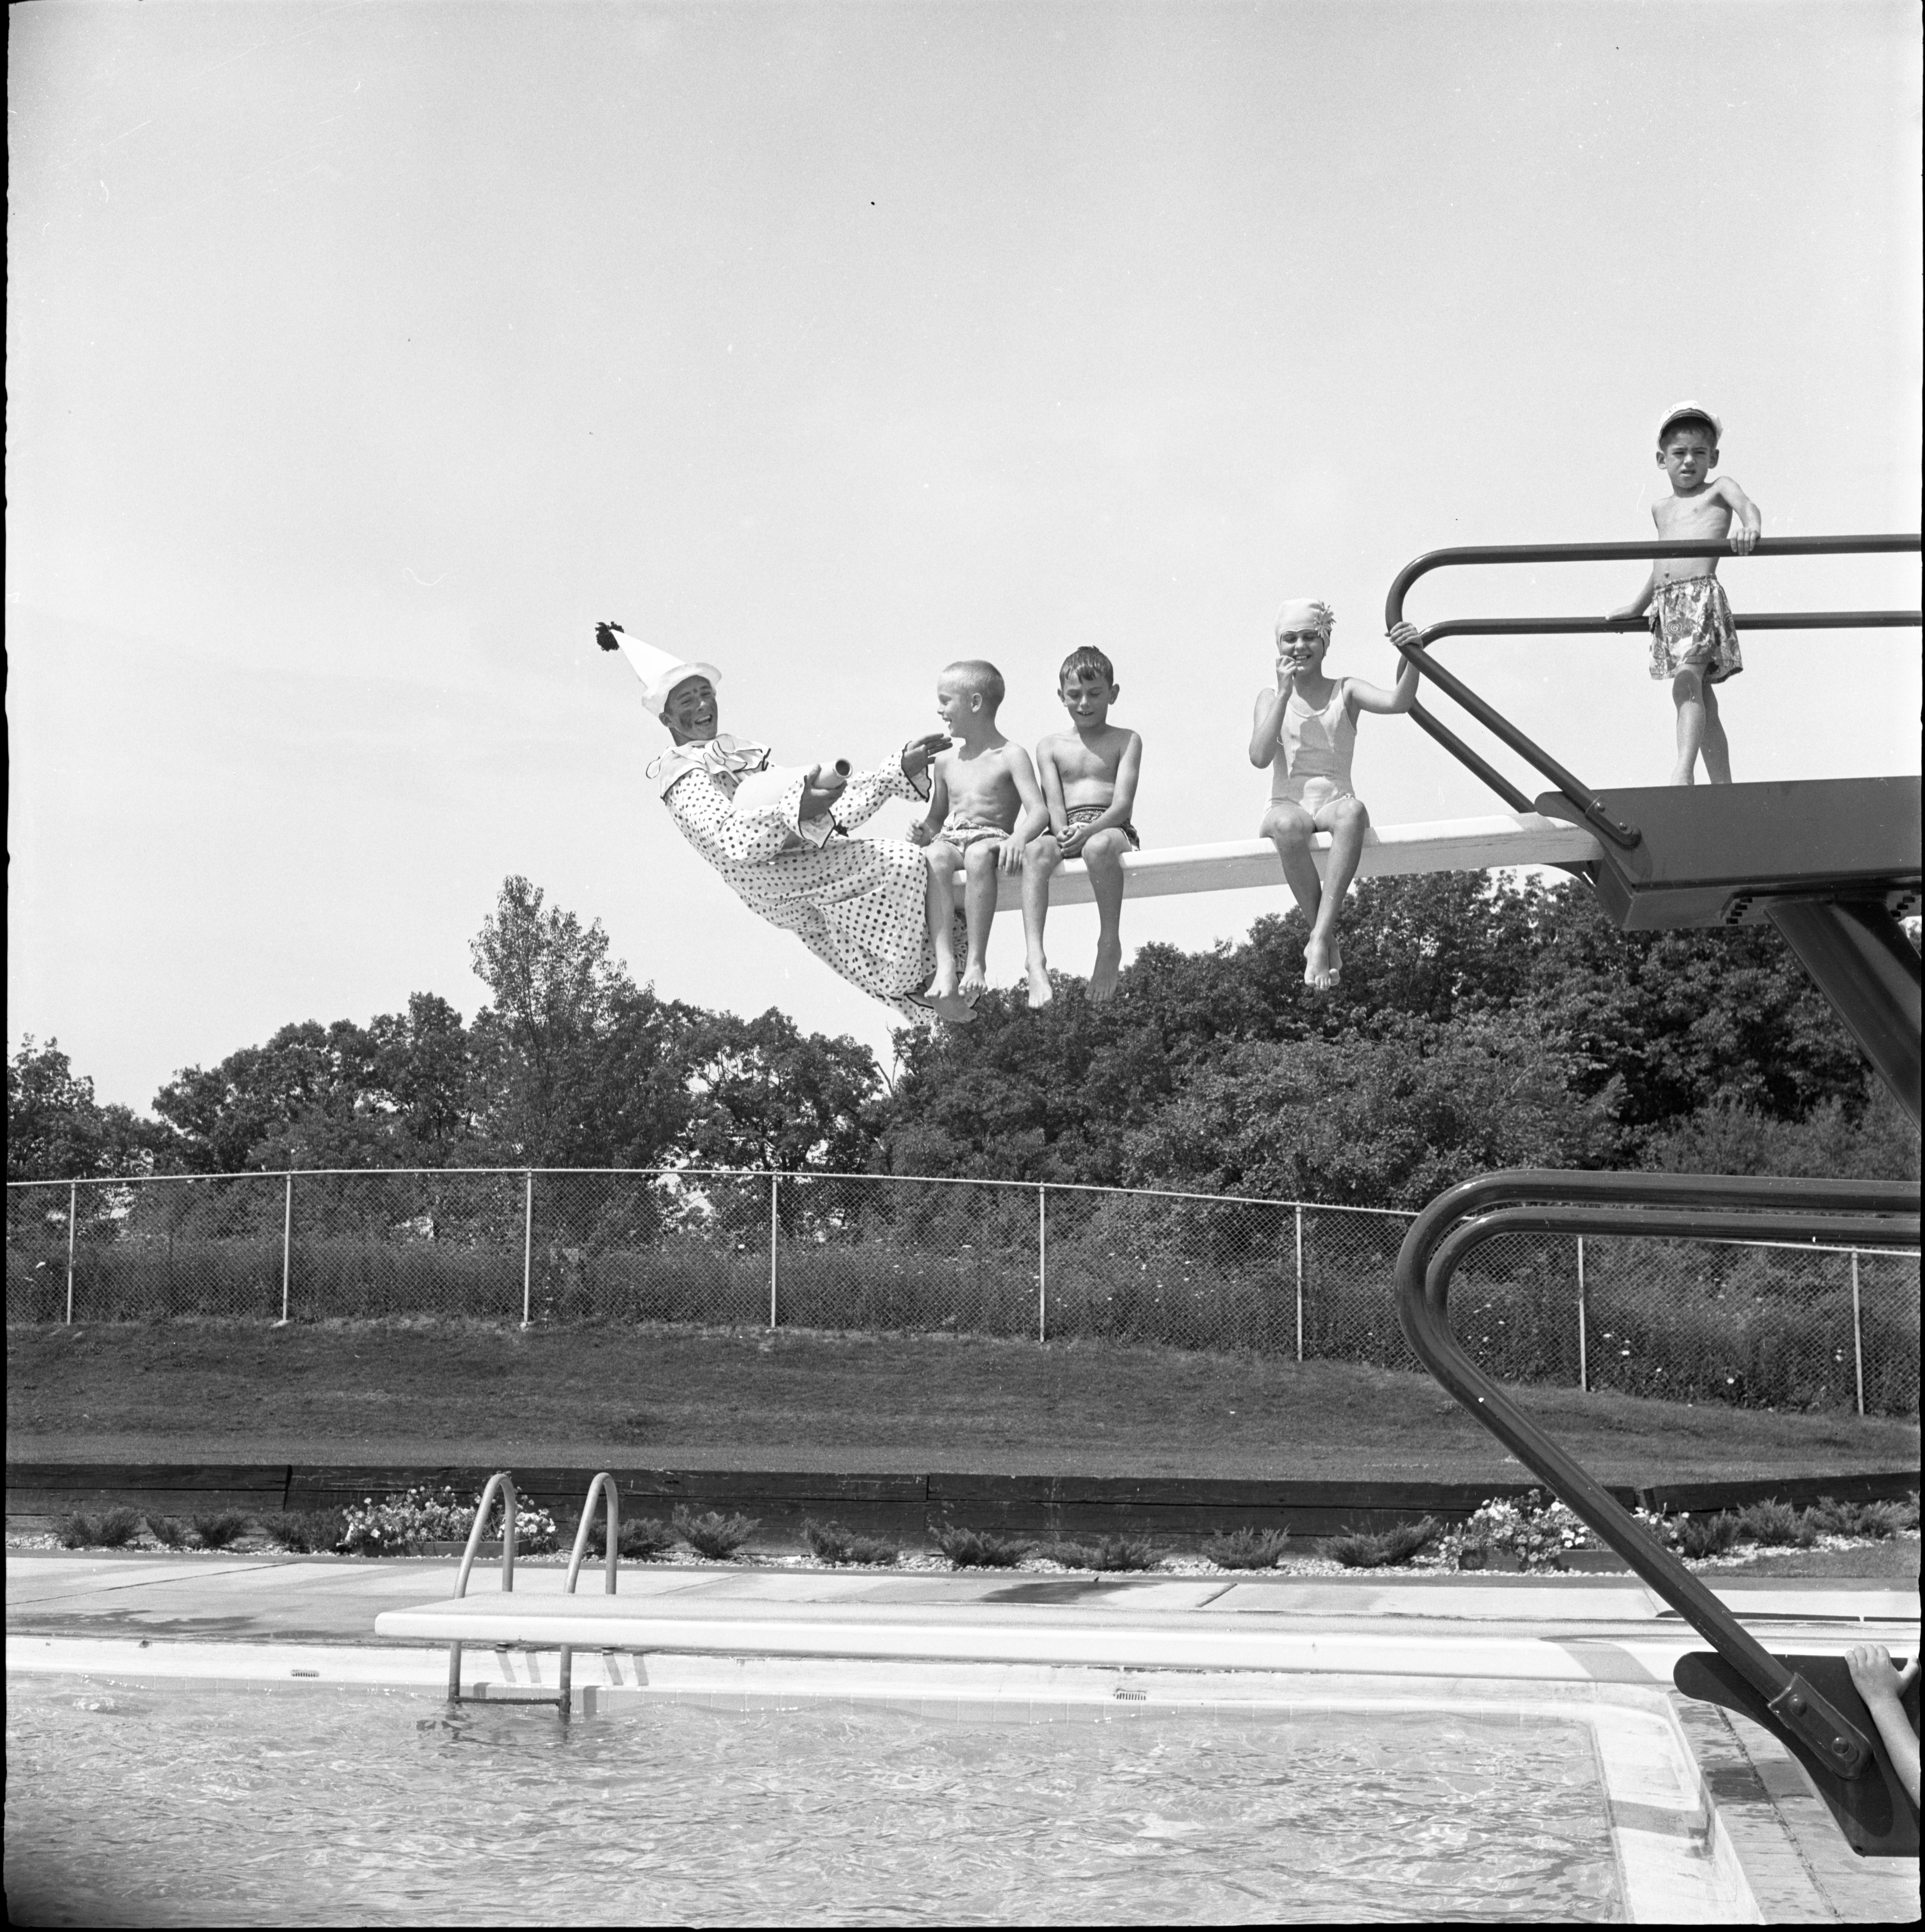 Jo Jo The Clown Entertains At The Chippewa Hills Swimming Club Water Circus, July 1962 image